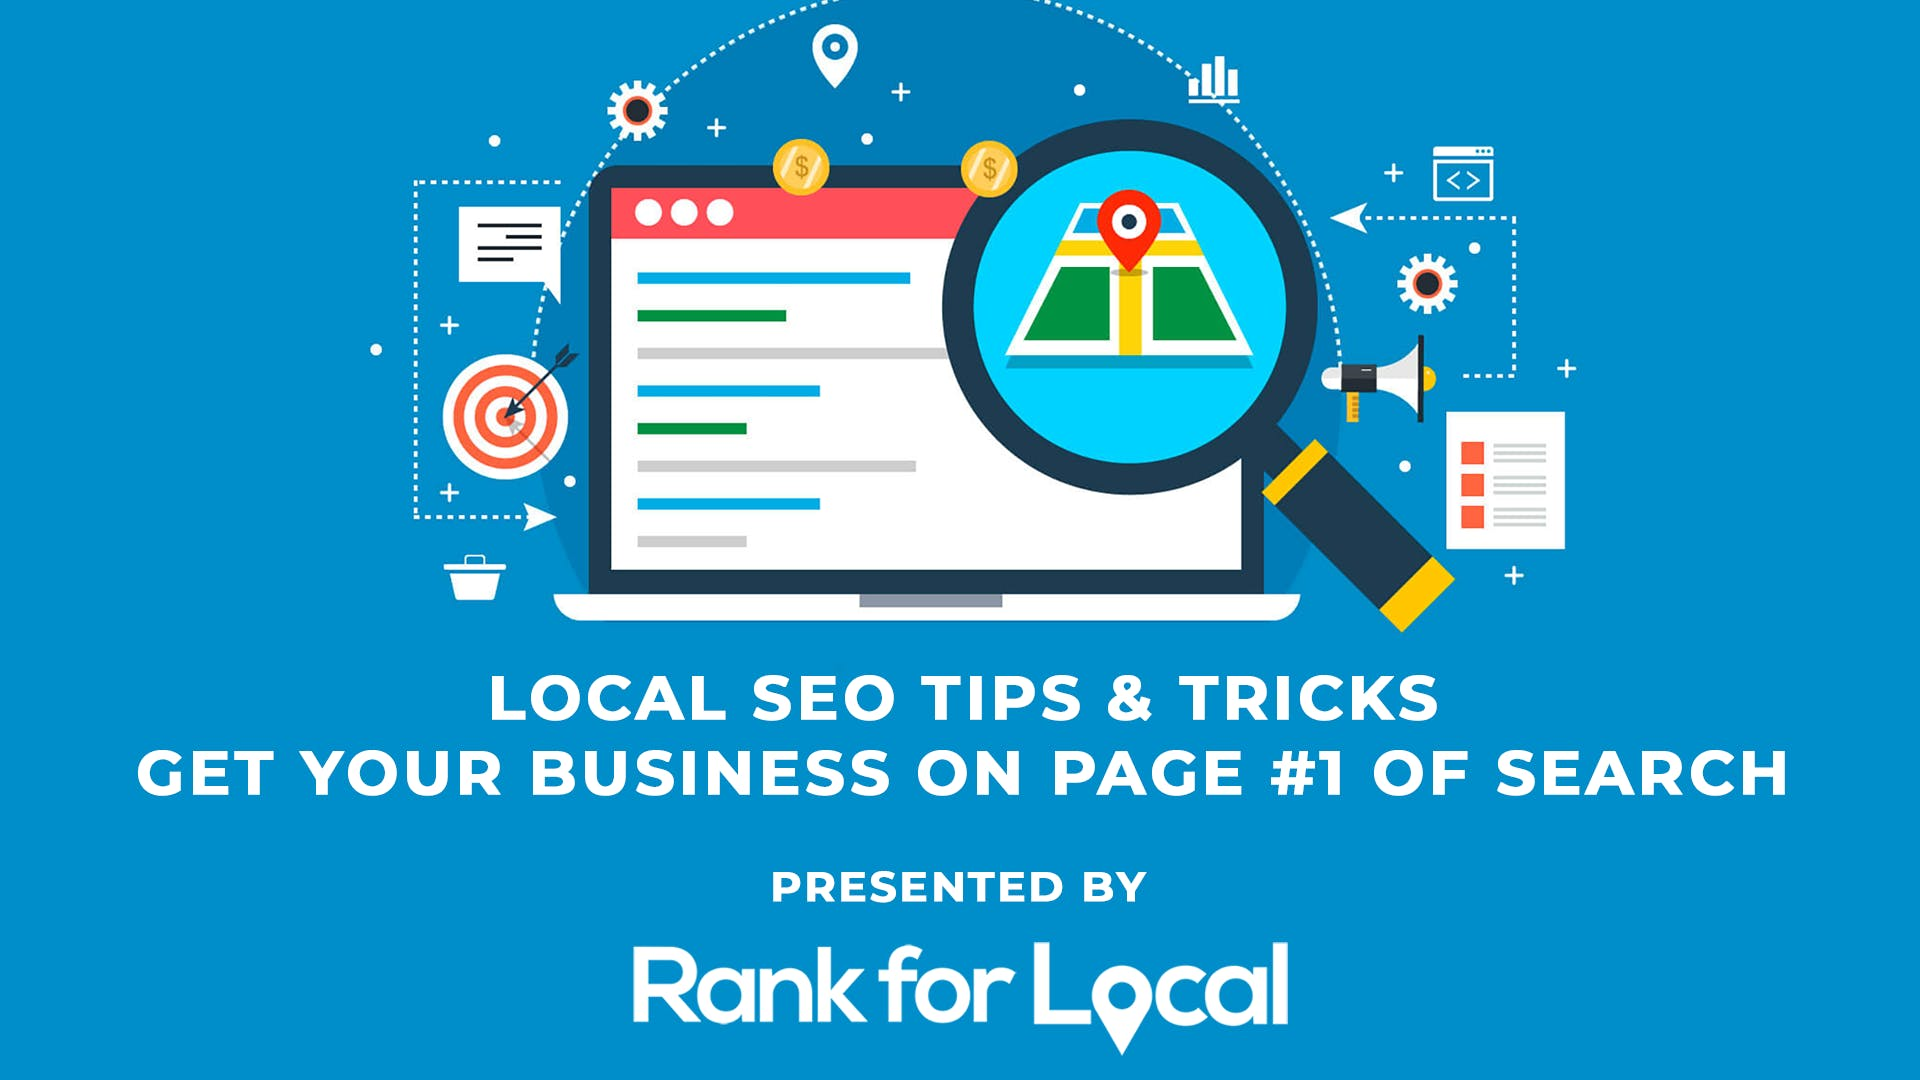 Local SEO Tips & Tricks - Get Your Business On Page #1 of Search